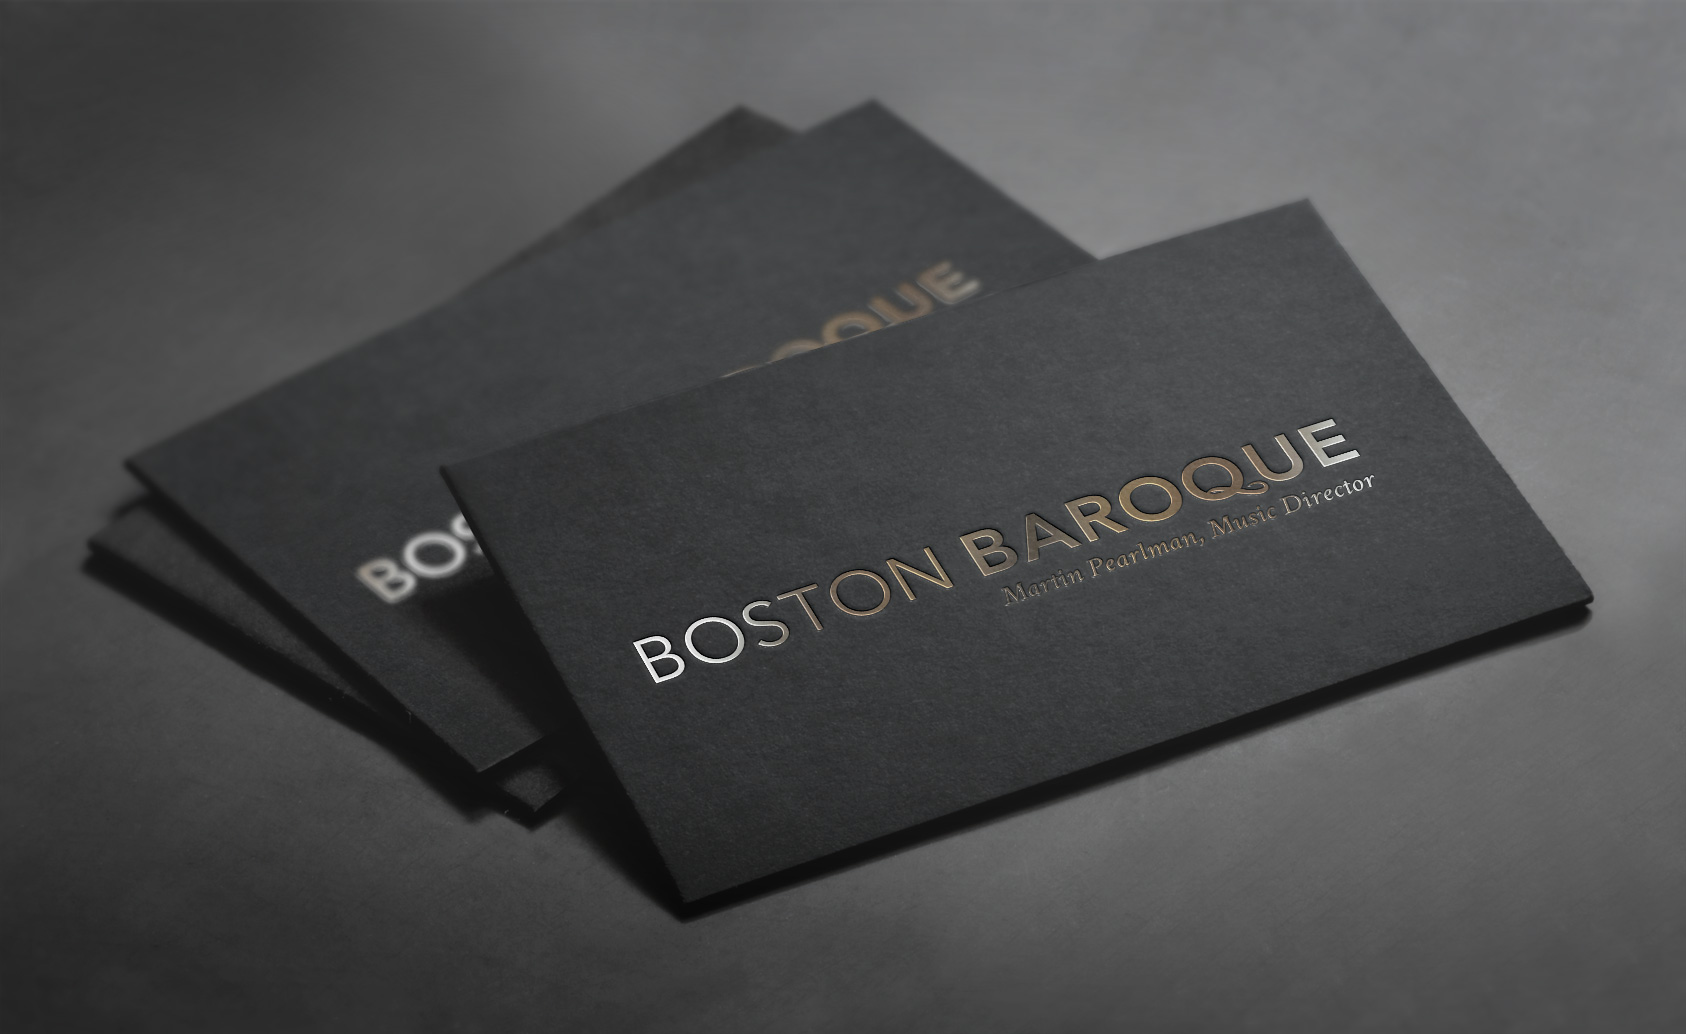 bostonbaroque8